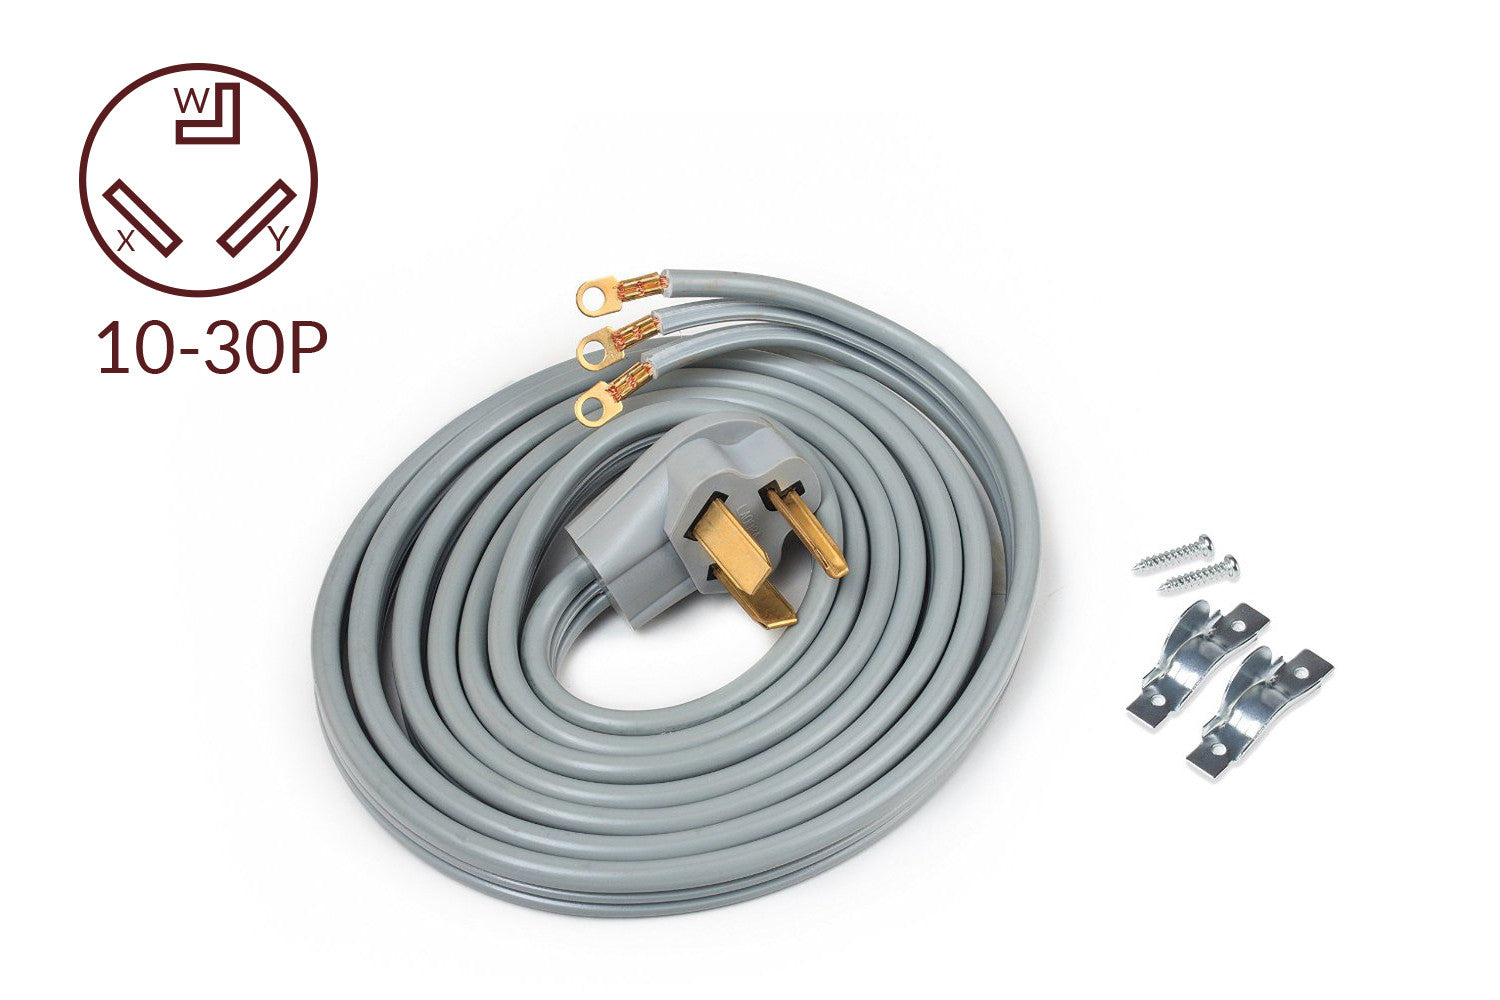 ACUPWR 3-wire Dryer Power Cord 10\' with Safe Power Coating ...